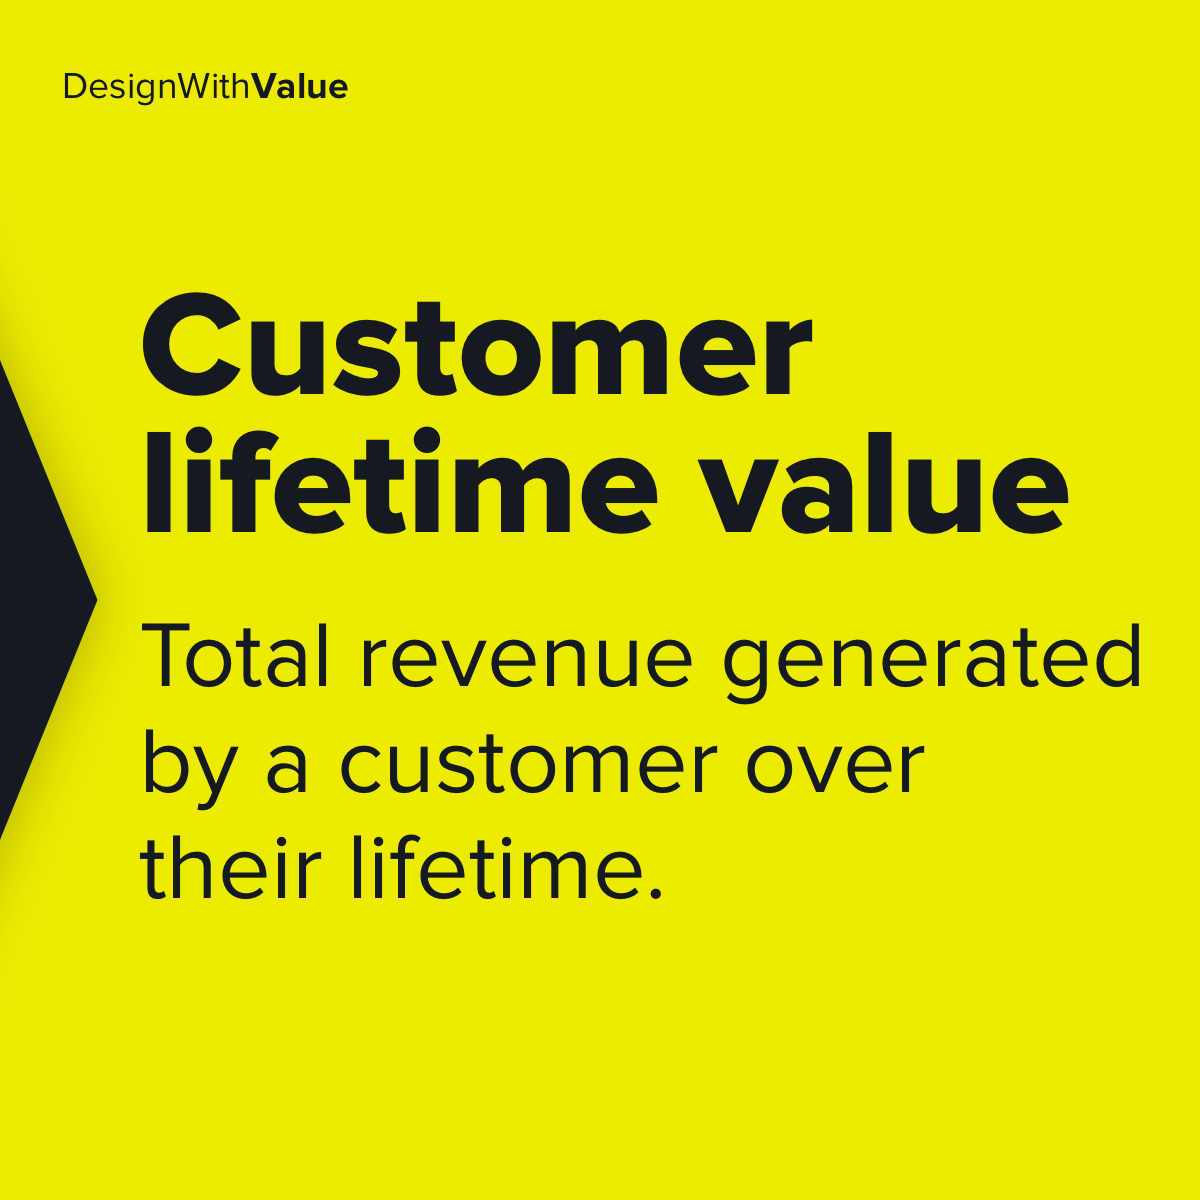 Customer lifetime value. CLV represents the total revenue generated by a customer over their lifetime.